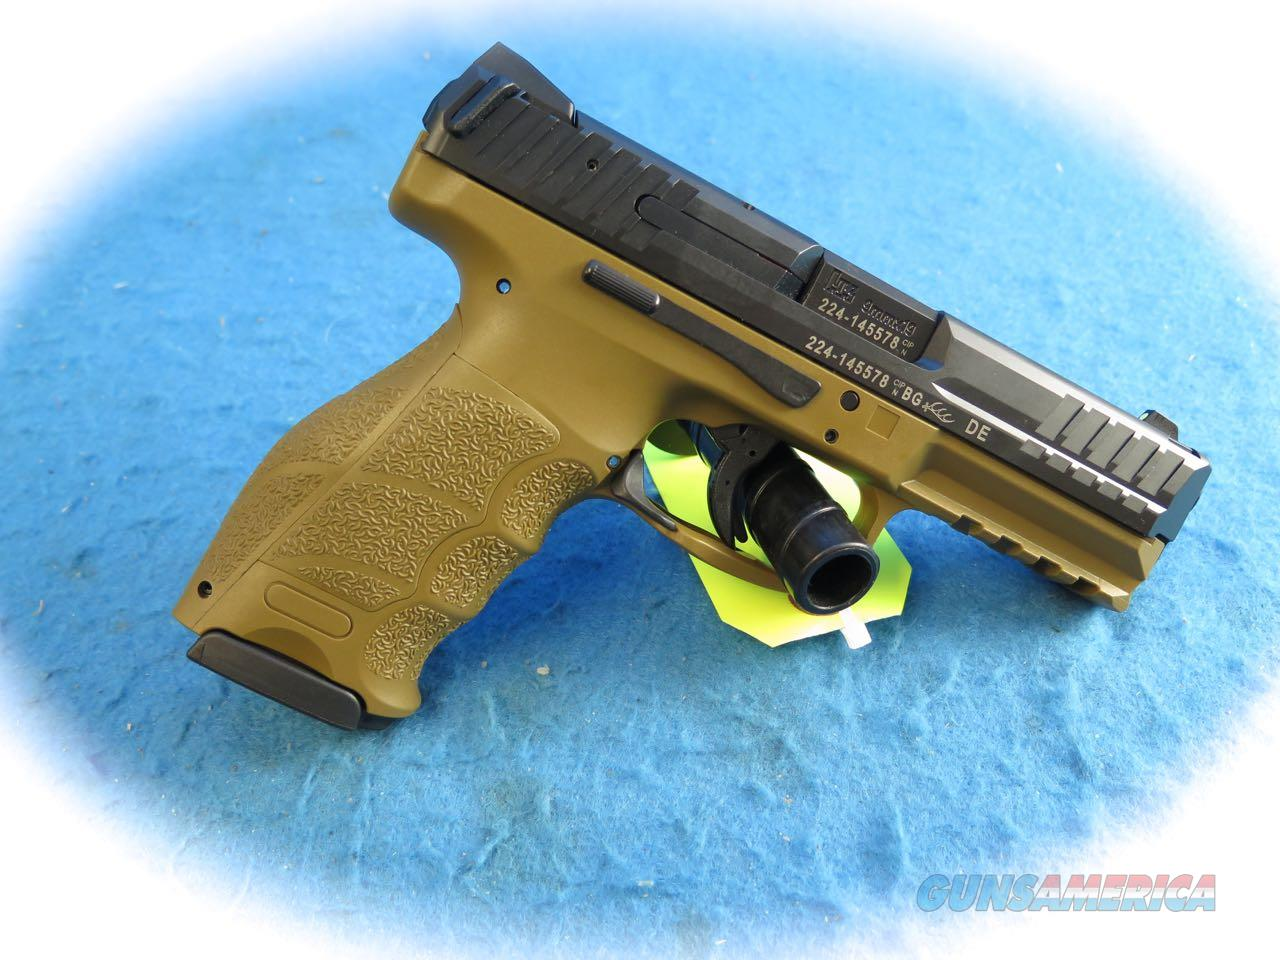 Heckler & Koch VP9 FDE 9mm Pistol Model 700009FDE-A5 **New**   Guns > Pistols > Heckler & Koch Pistols > Polymer Frame